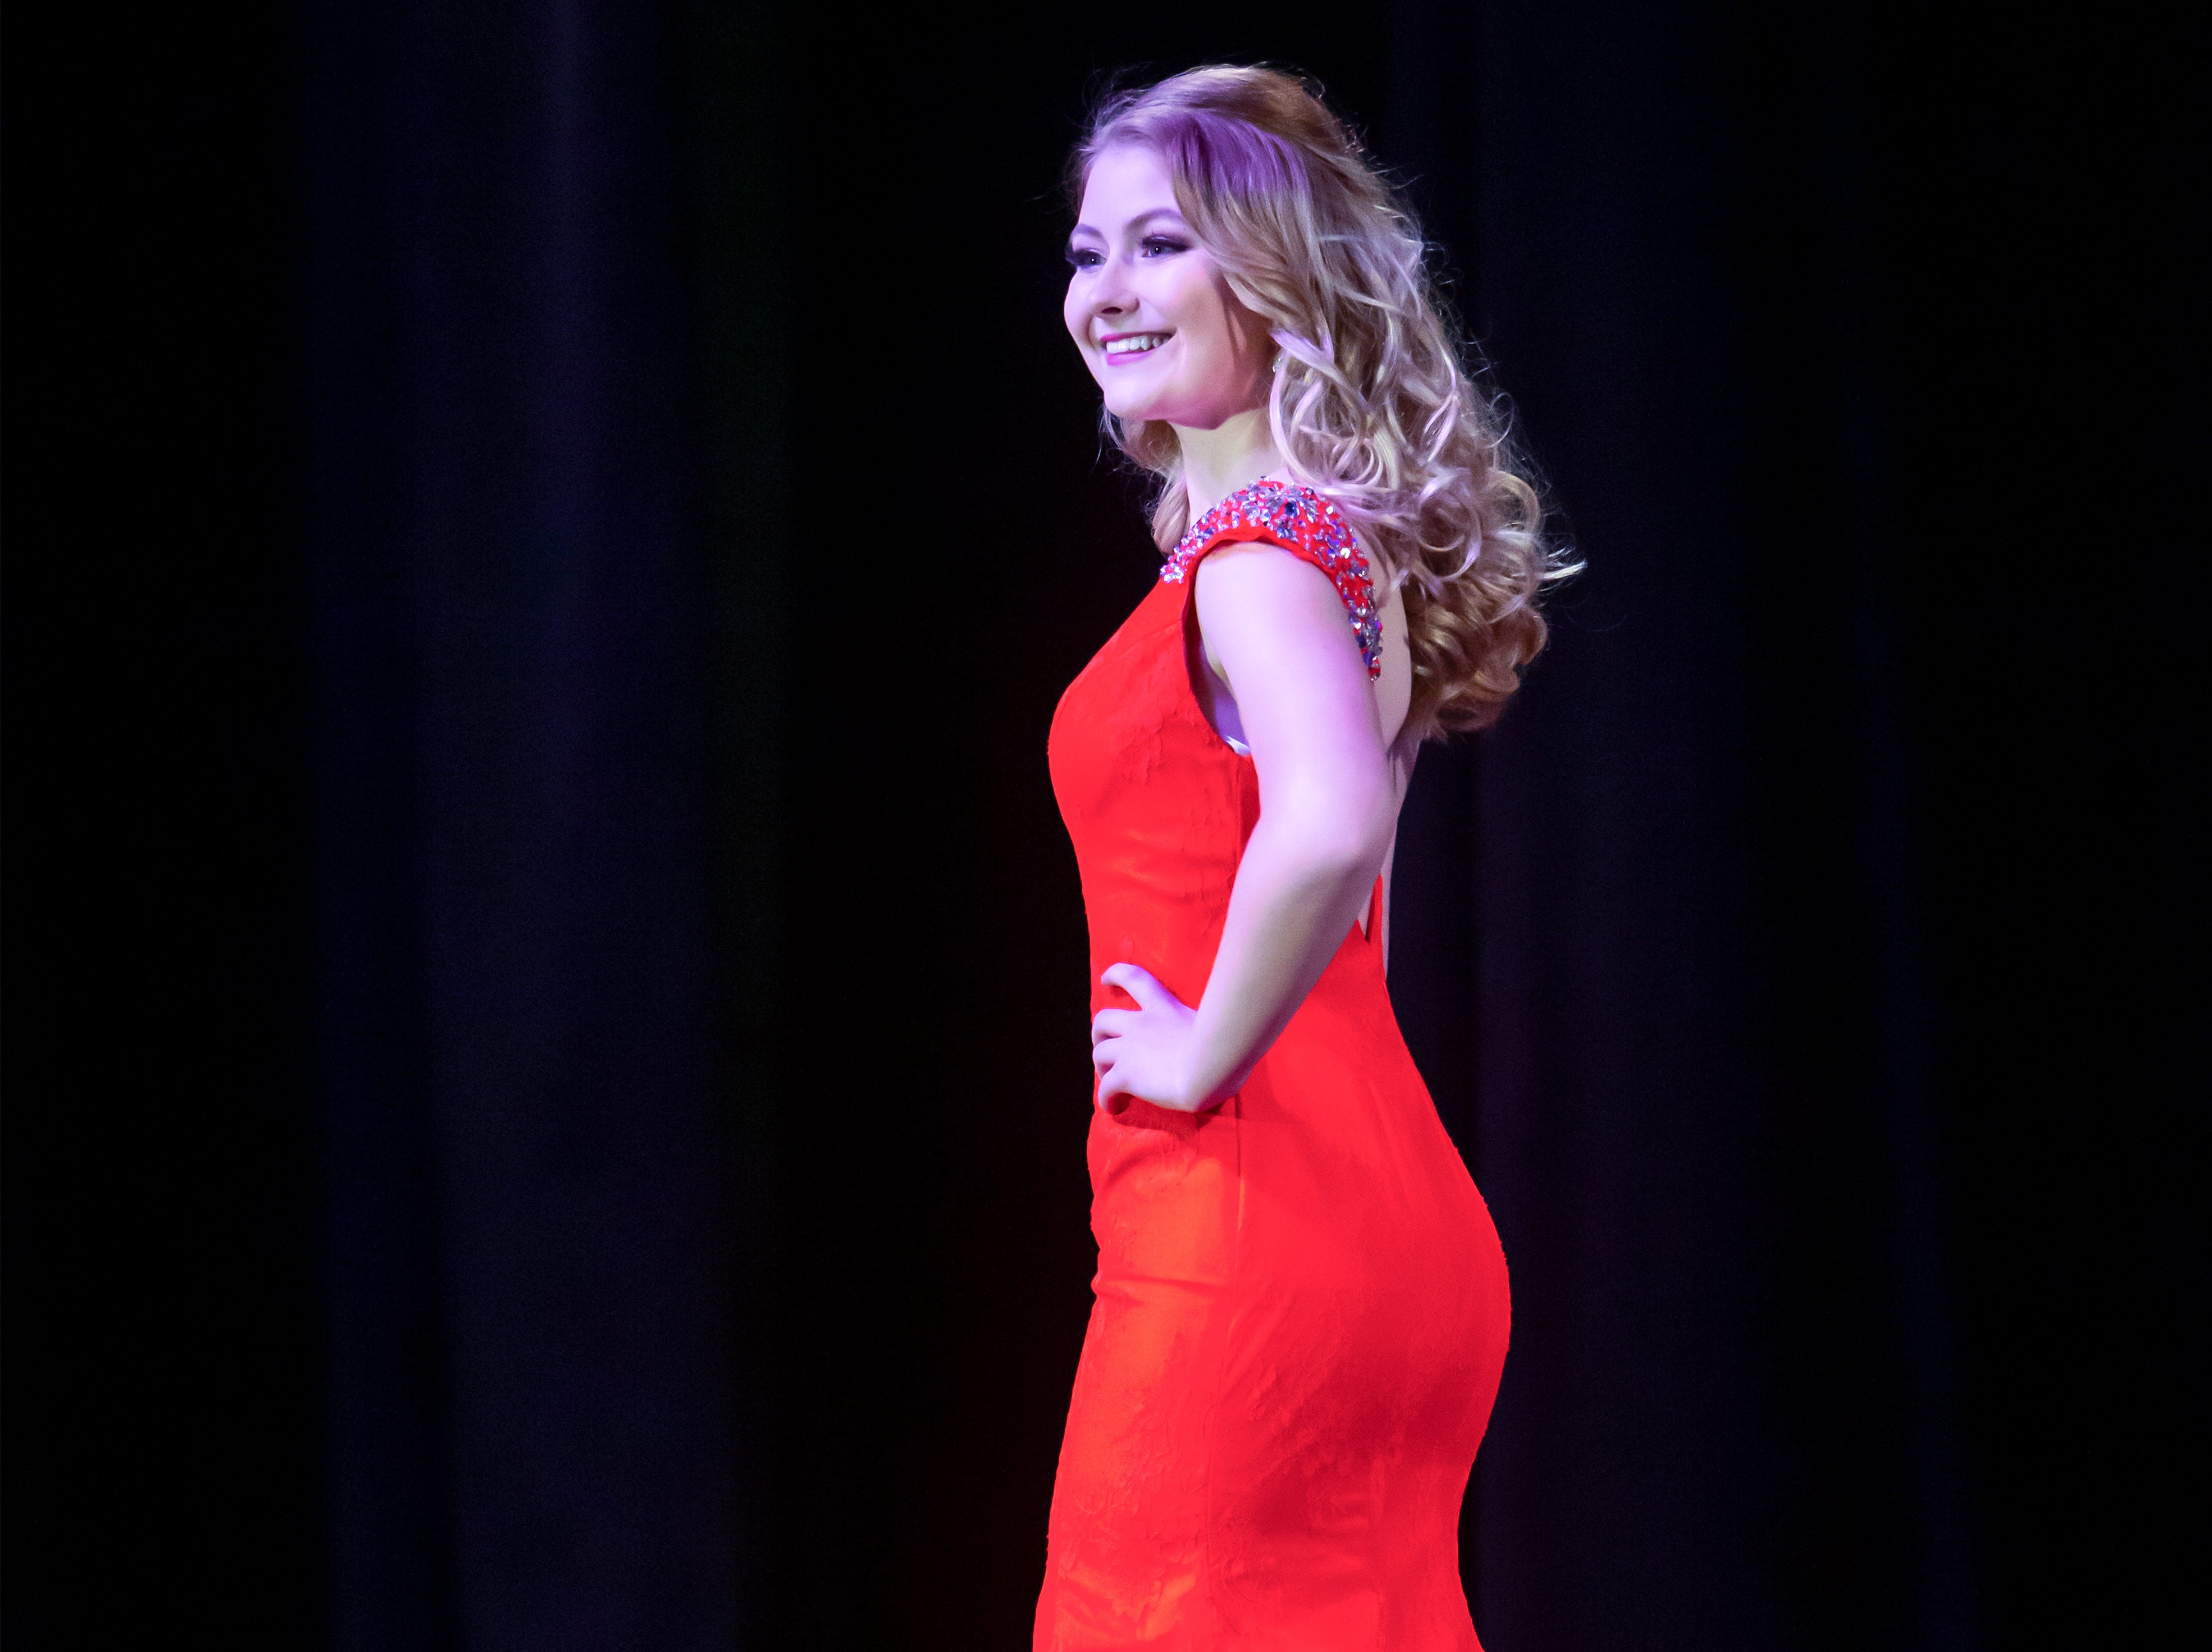 Isabella Garvey wins 4th runner up during the Miss Oshkosh Scholarship Pageant Saturday, March 2, 2019, at Alberta Kimball Auditorium in Oshkosh, Wis.